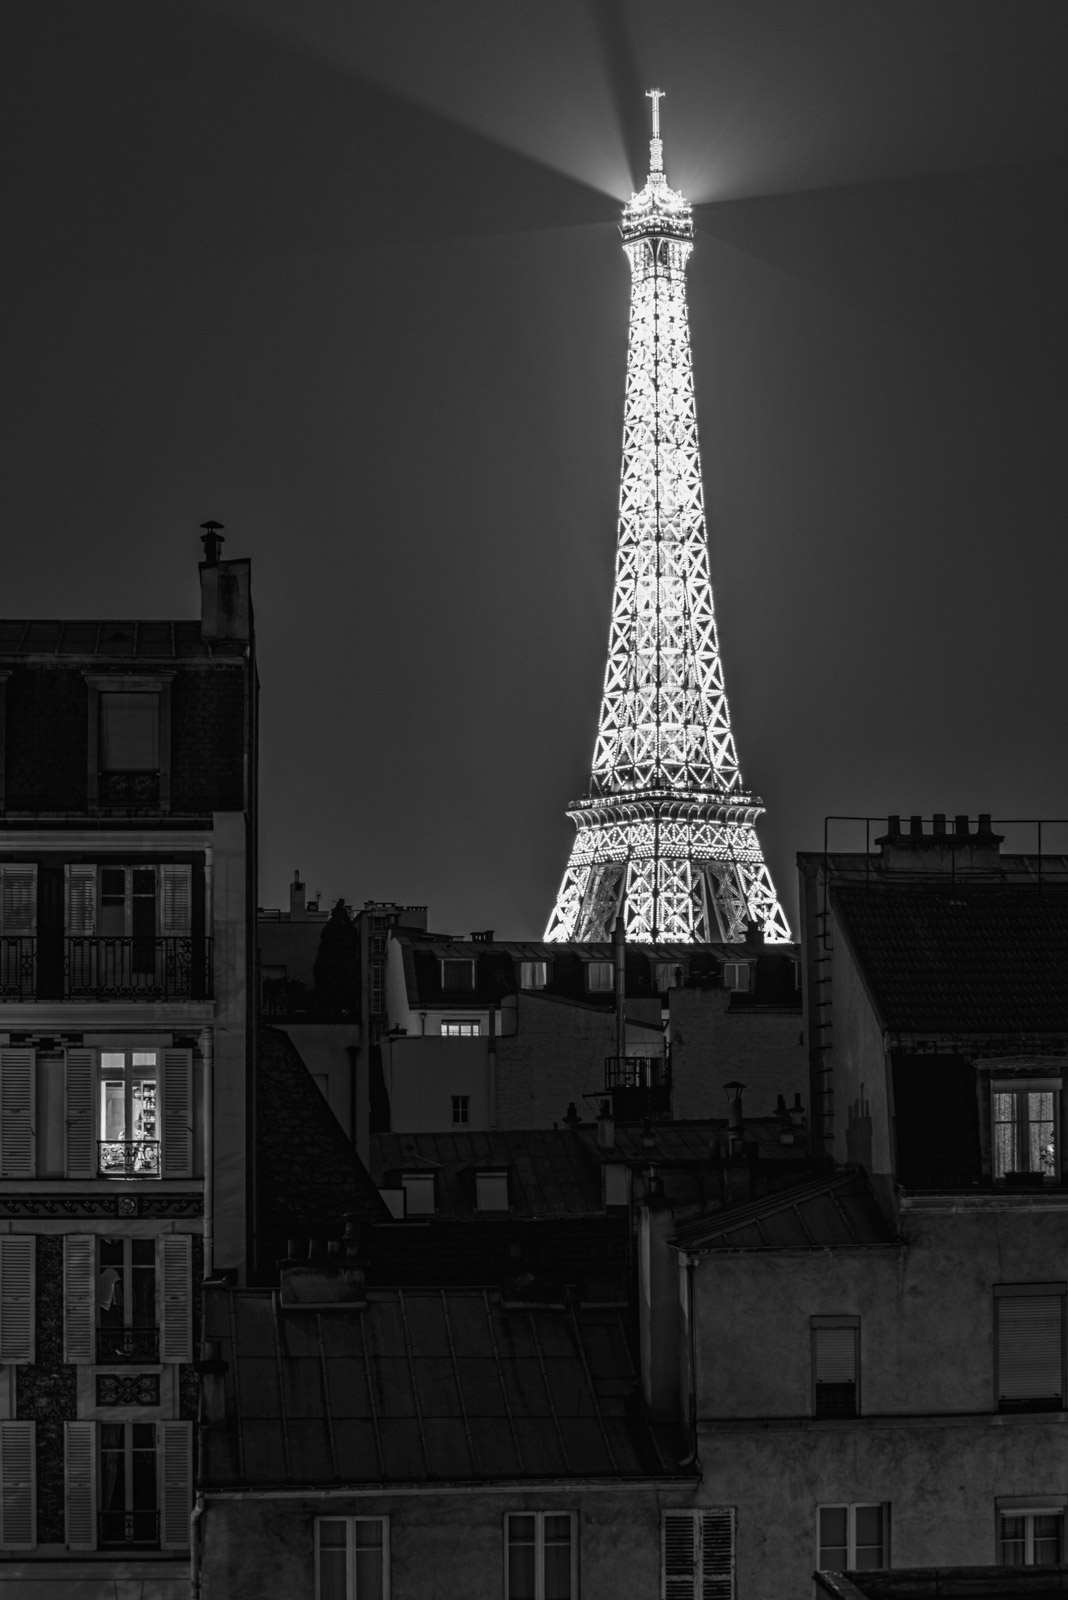 TOUR EIFFEL, LOOKING OUT A NEIGHBORHOOD WINDOW